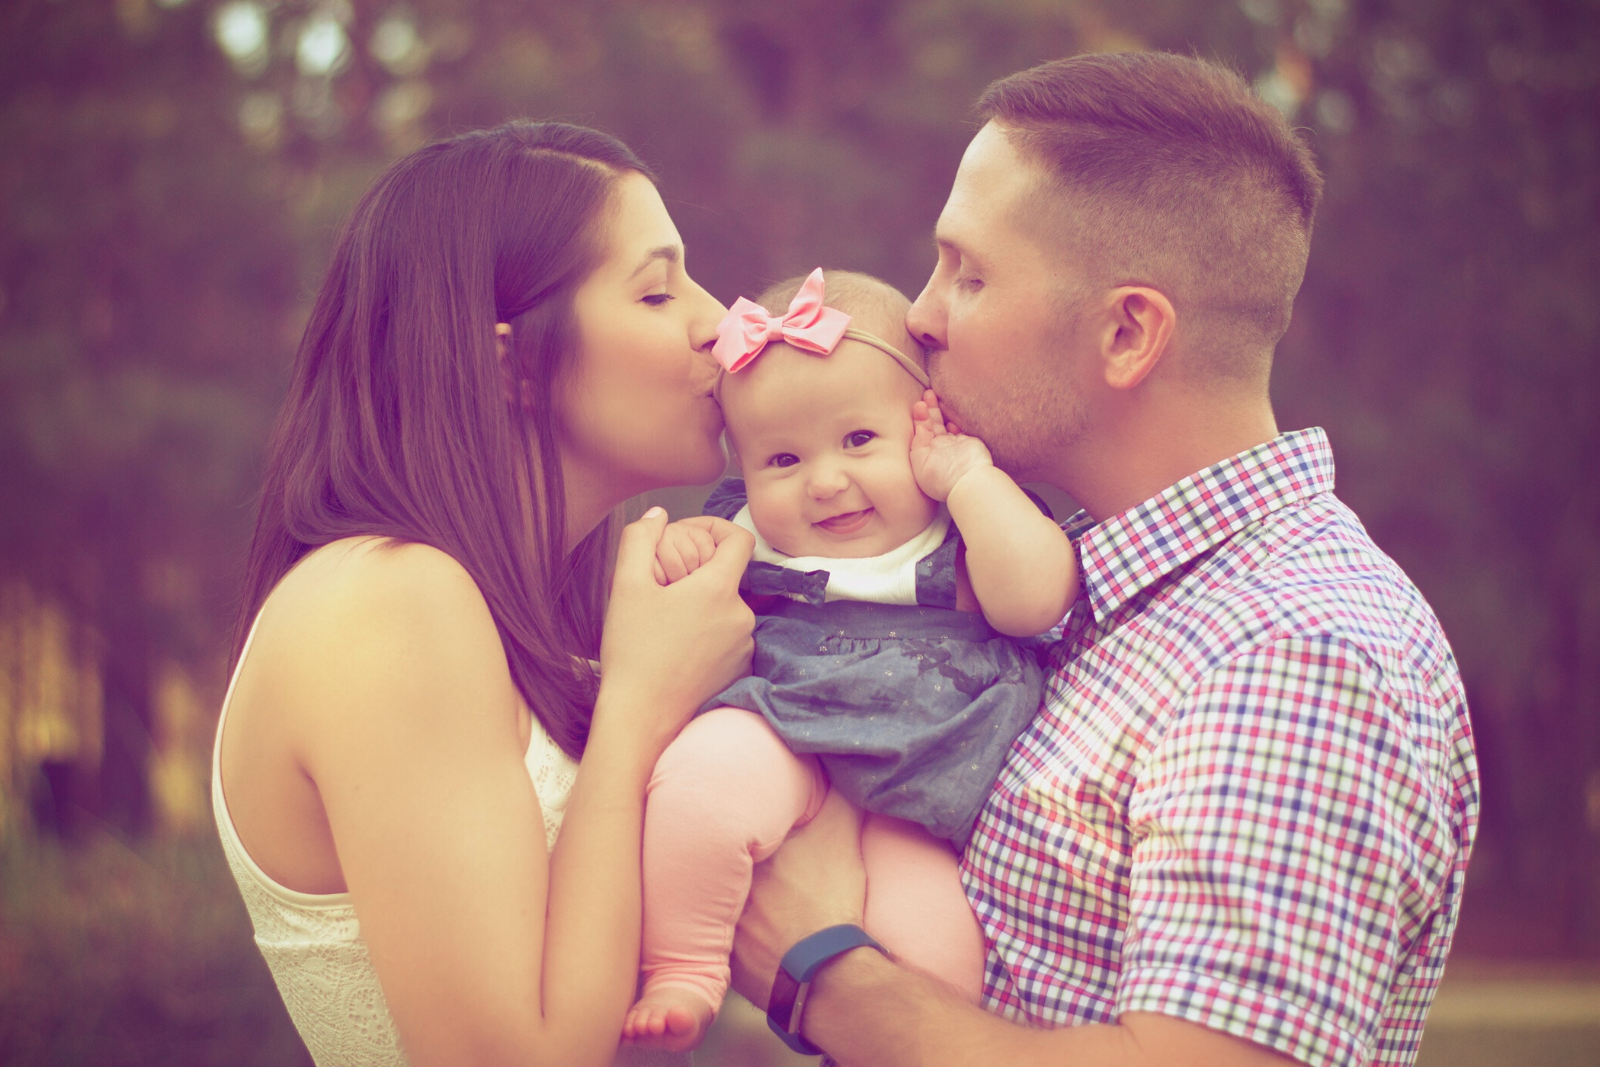 Family | 2020 Most Popular Baby Names And Their Meanings [UPDATED]